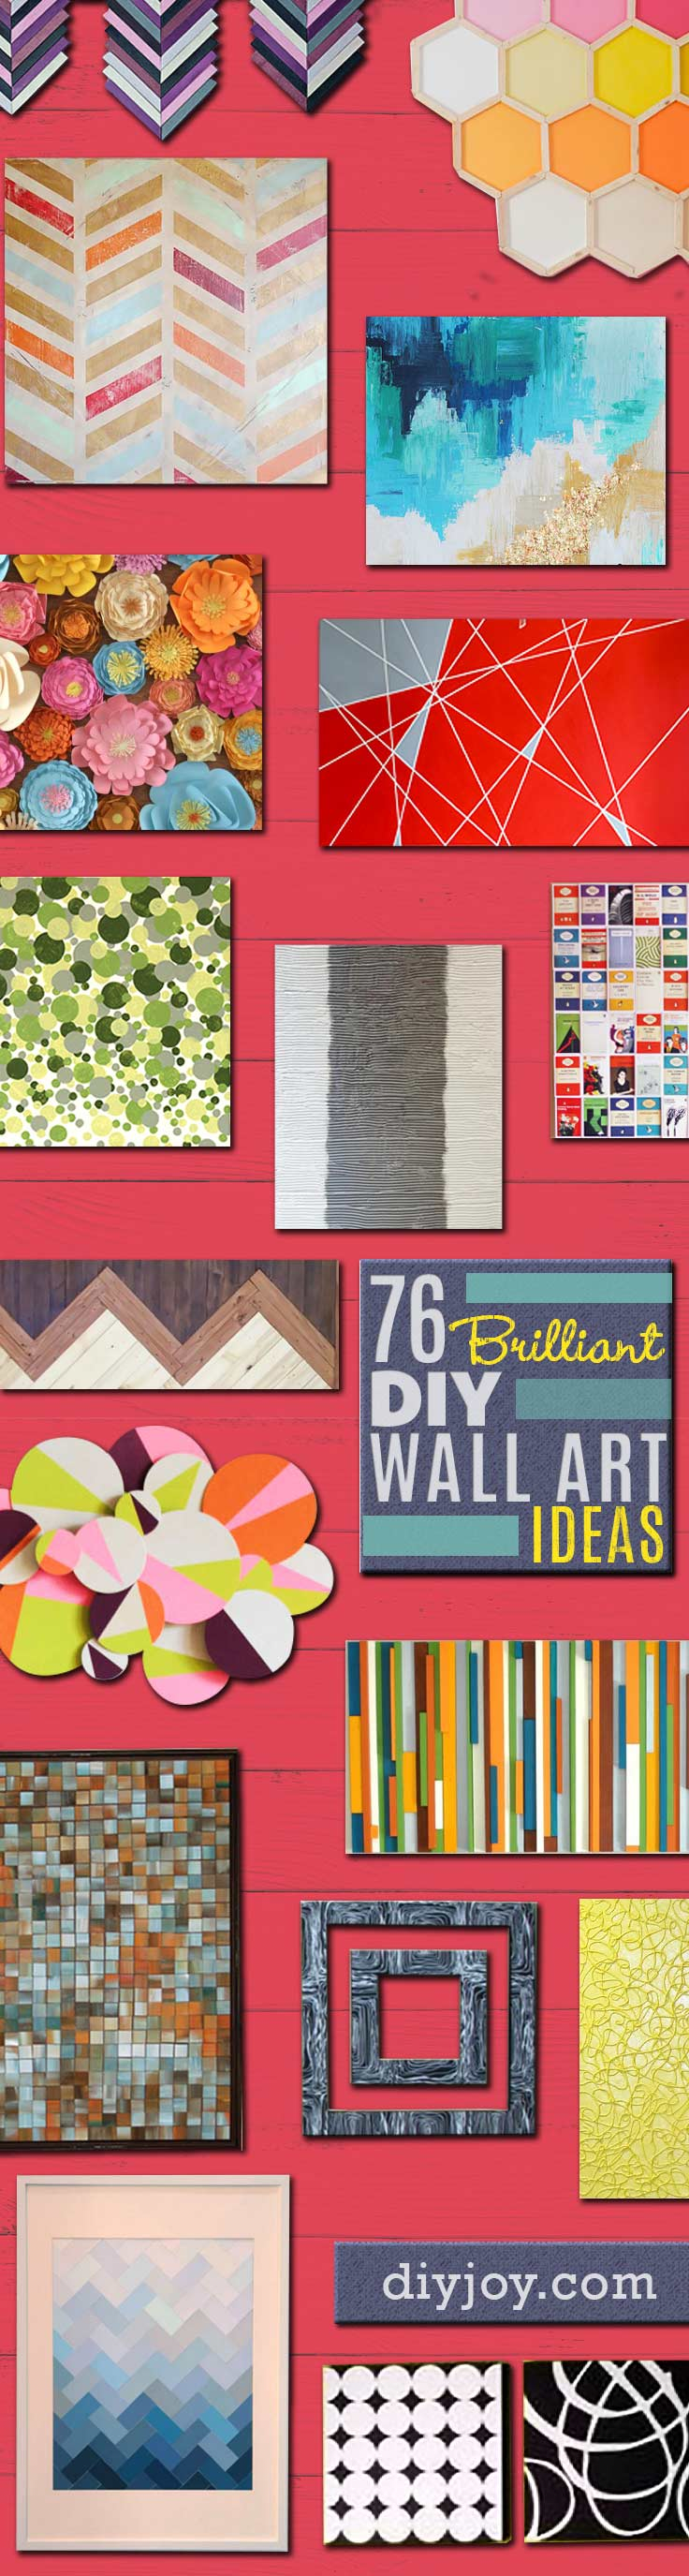 Magnificent 76 Brilliant Diy Wall Art Ideas For Your Blank Walls Download Free Architecture Designs Ogrambritishbridgeorg